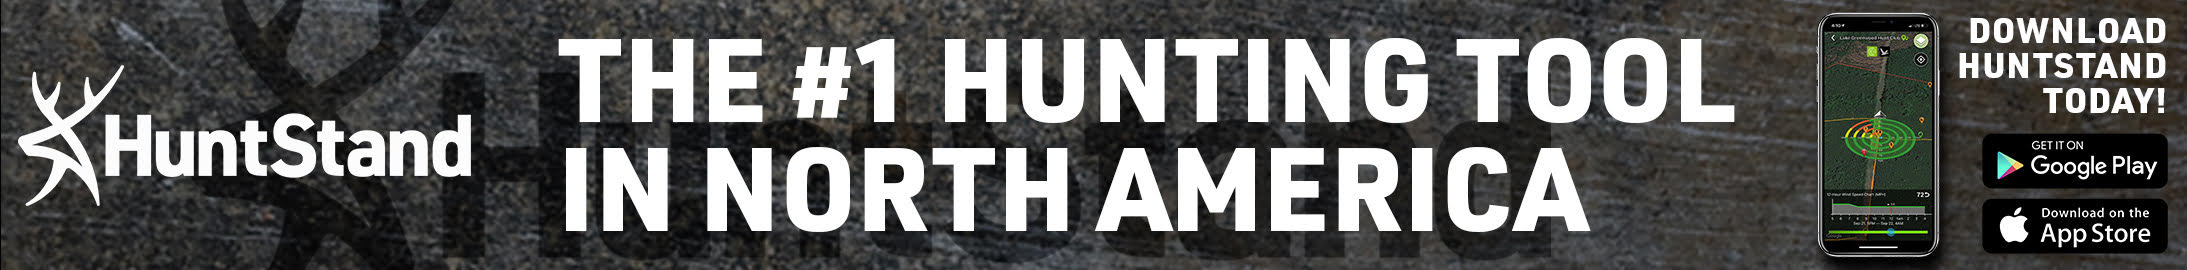 HuntStand Hunting App